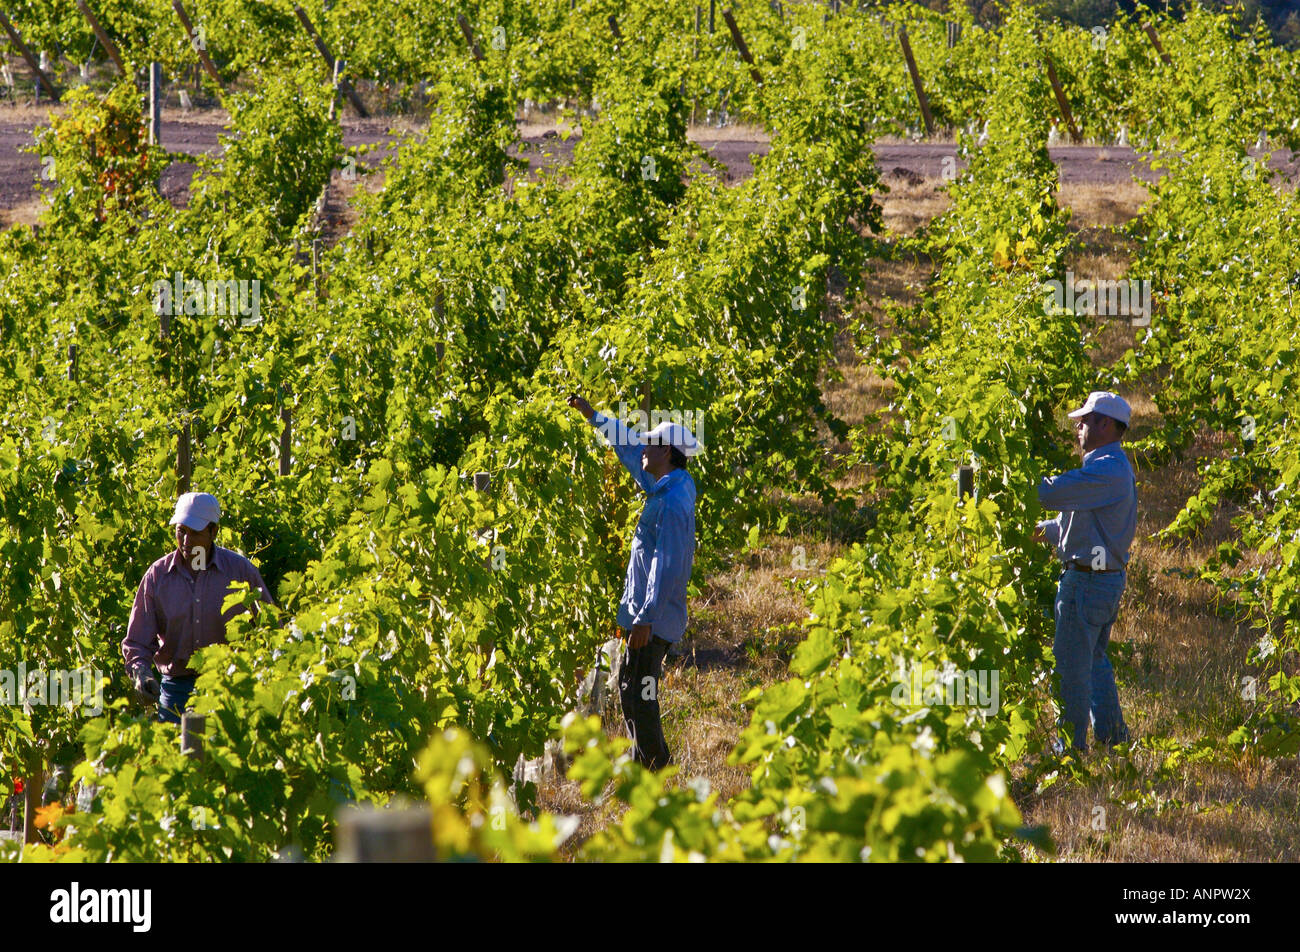 Canopy management in vineyards of Luis Felipe Edwards Colchagua Valley Chile Rapel & Canopy management in vineyards of Luis Felipe Edwards Colchagua ...